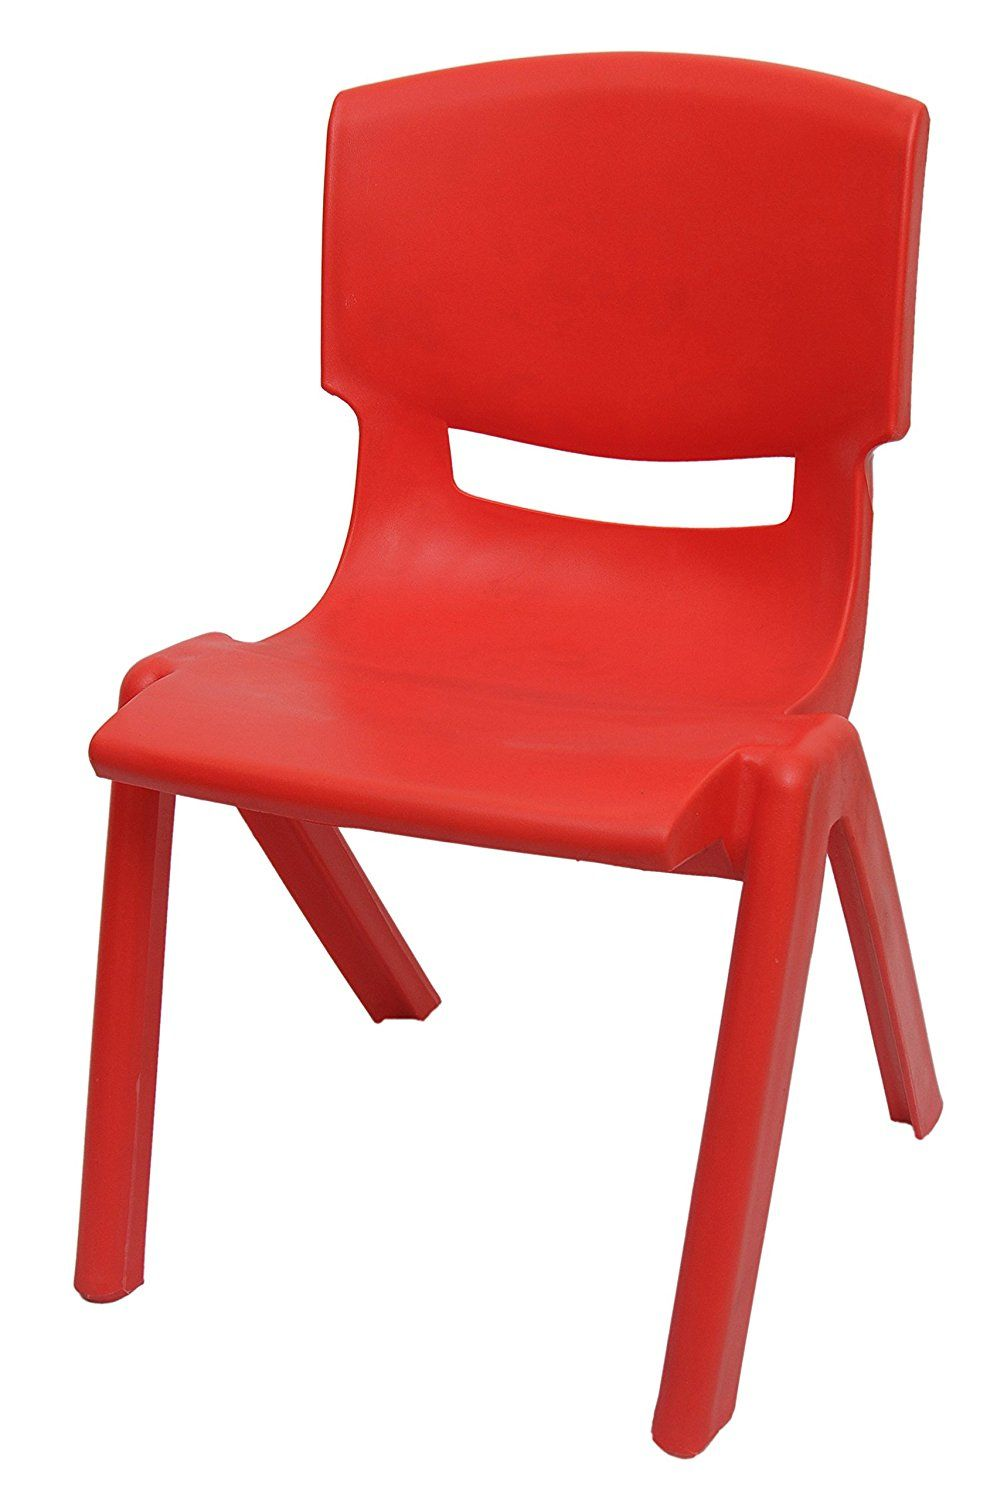 Small Chairs For Kids Intra Kids Strong And Kids Plastic Chairs Small Chair Kids Chairs